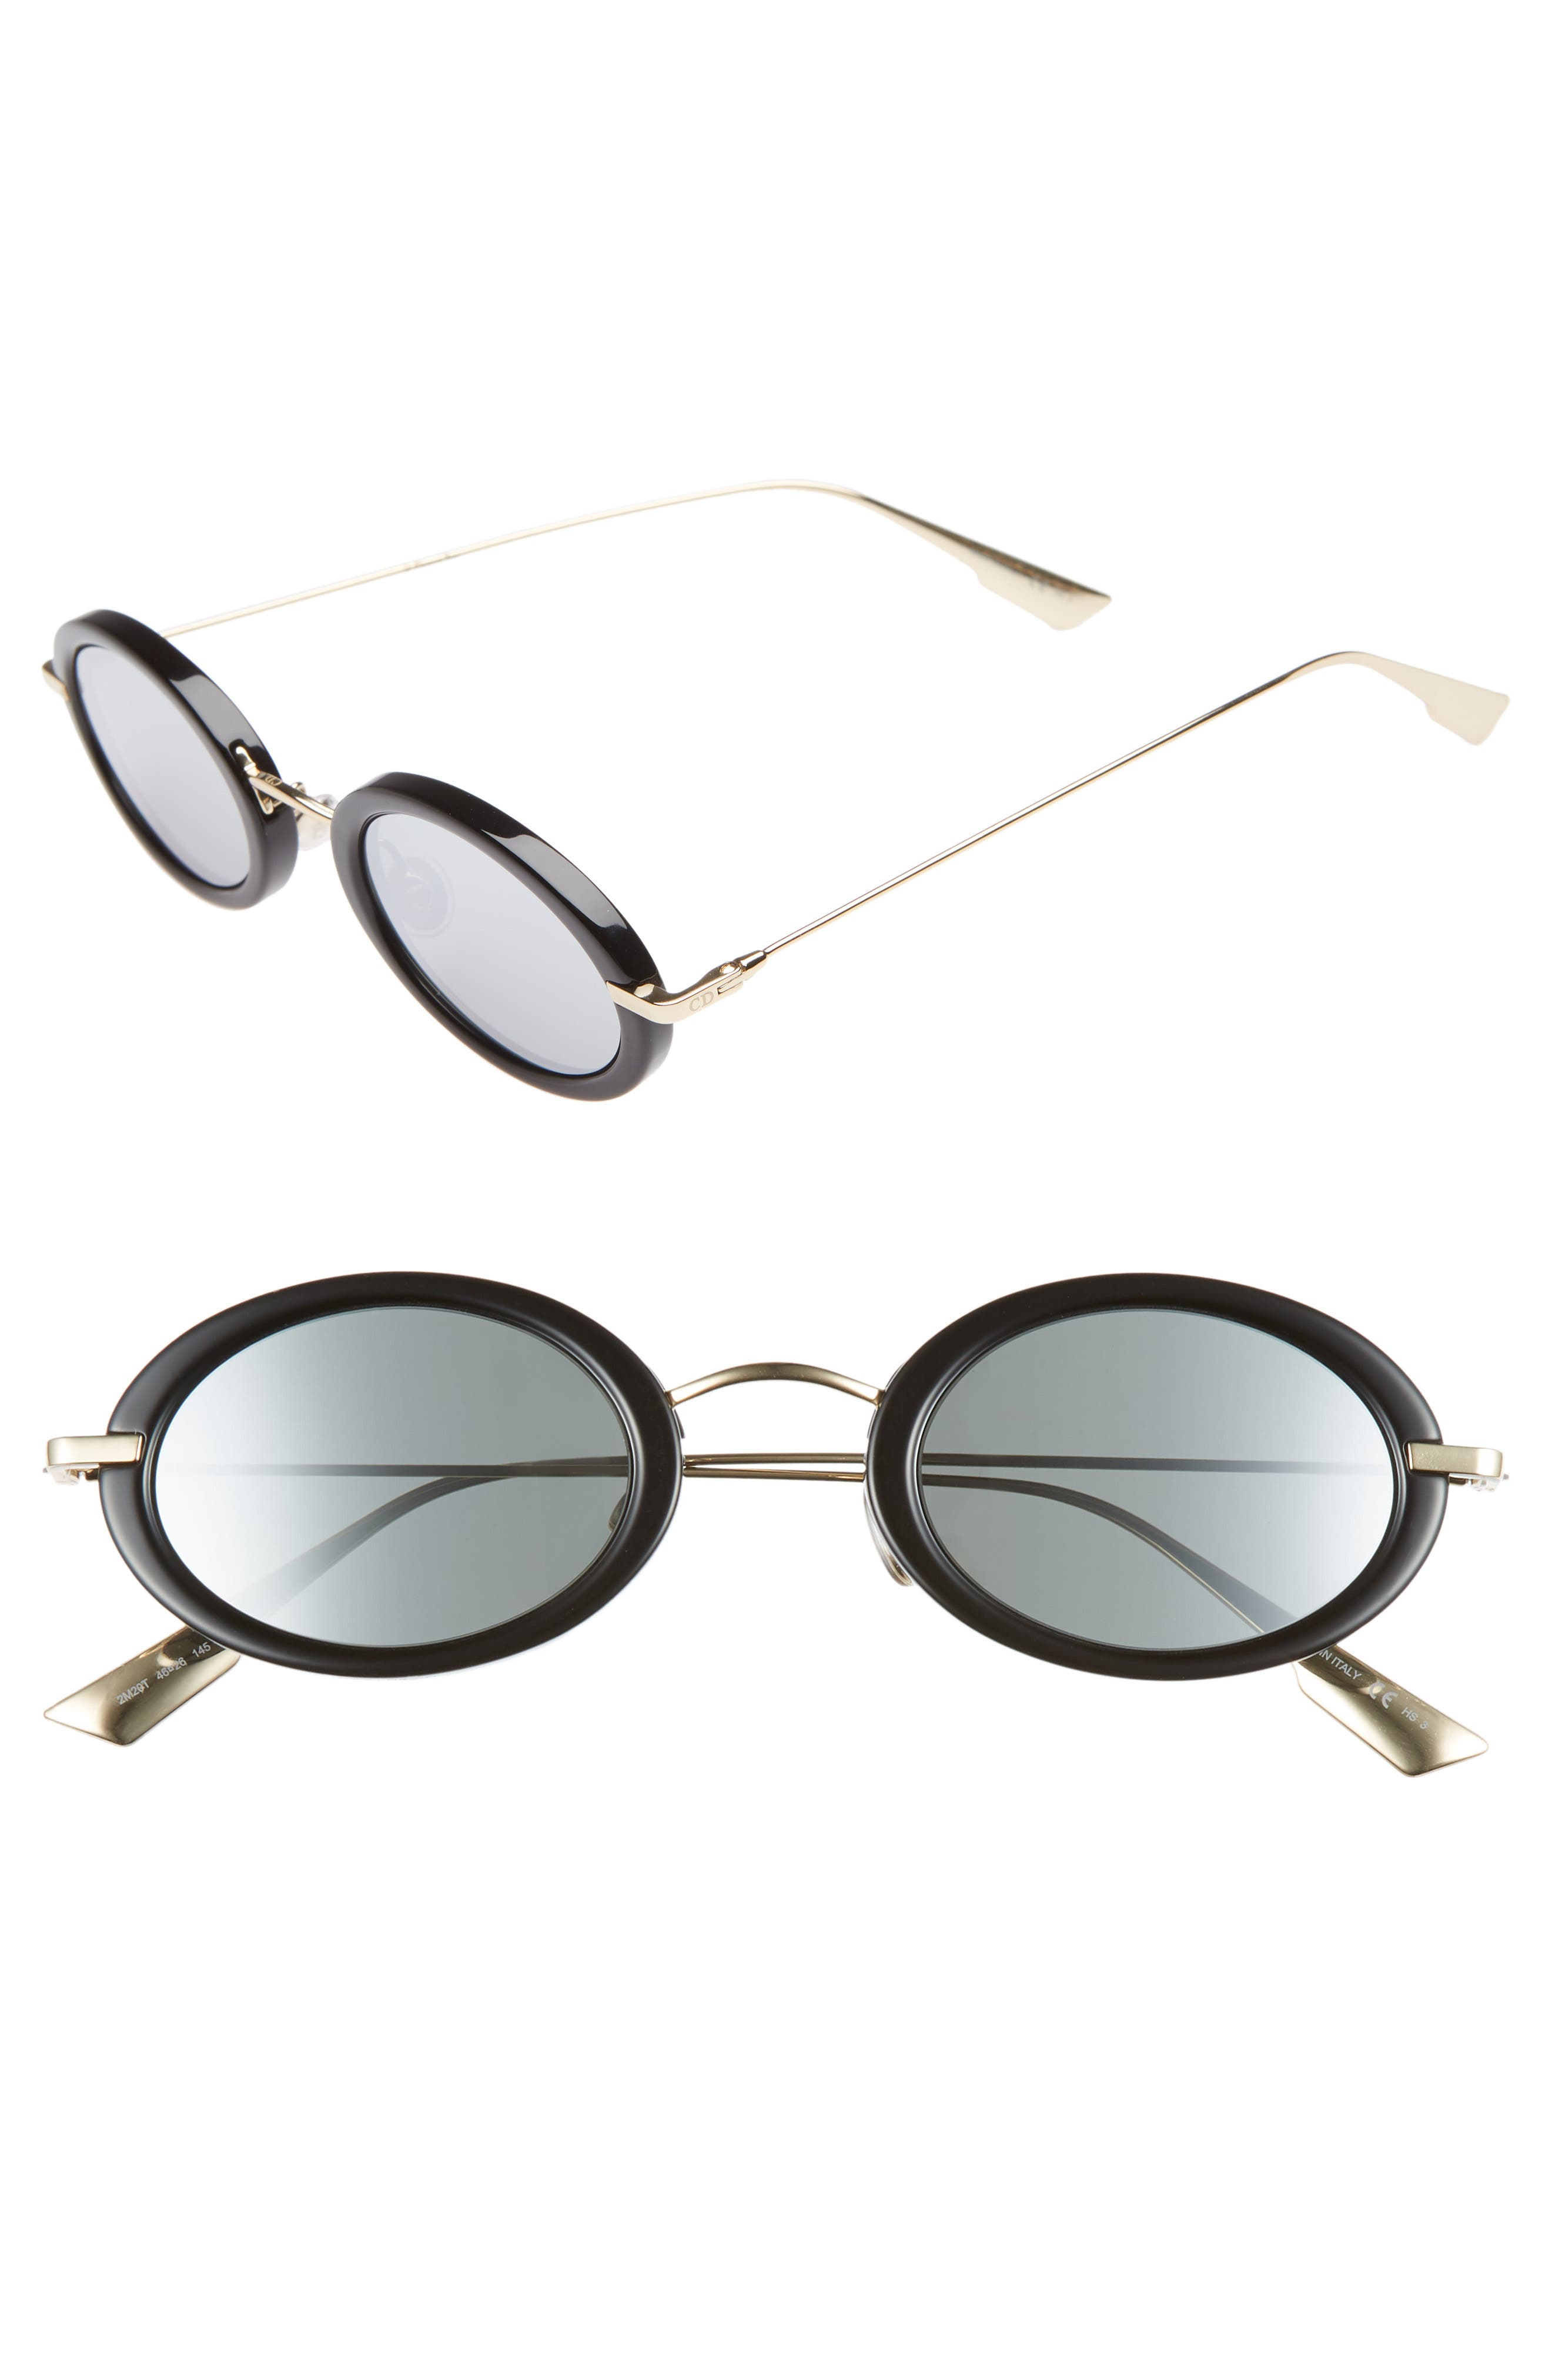 Christian Dior Hypnotic2 46mm Round Sunglasses,                             Main thumbnail 1, color,                             BLACK GOLD/ GREY SILVER